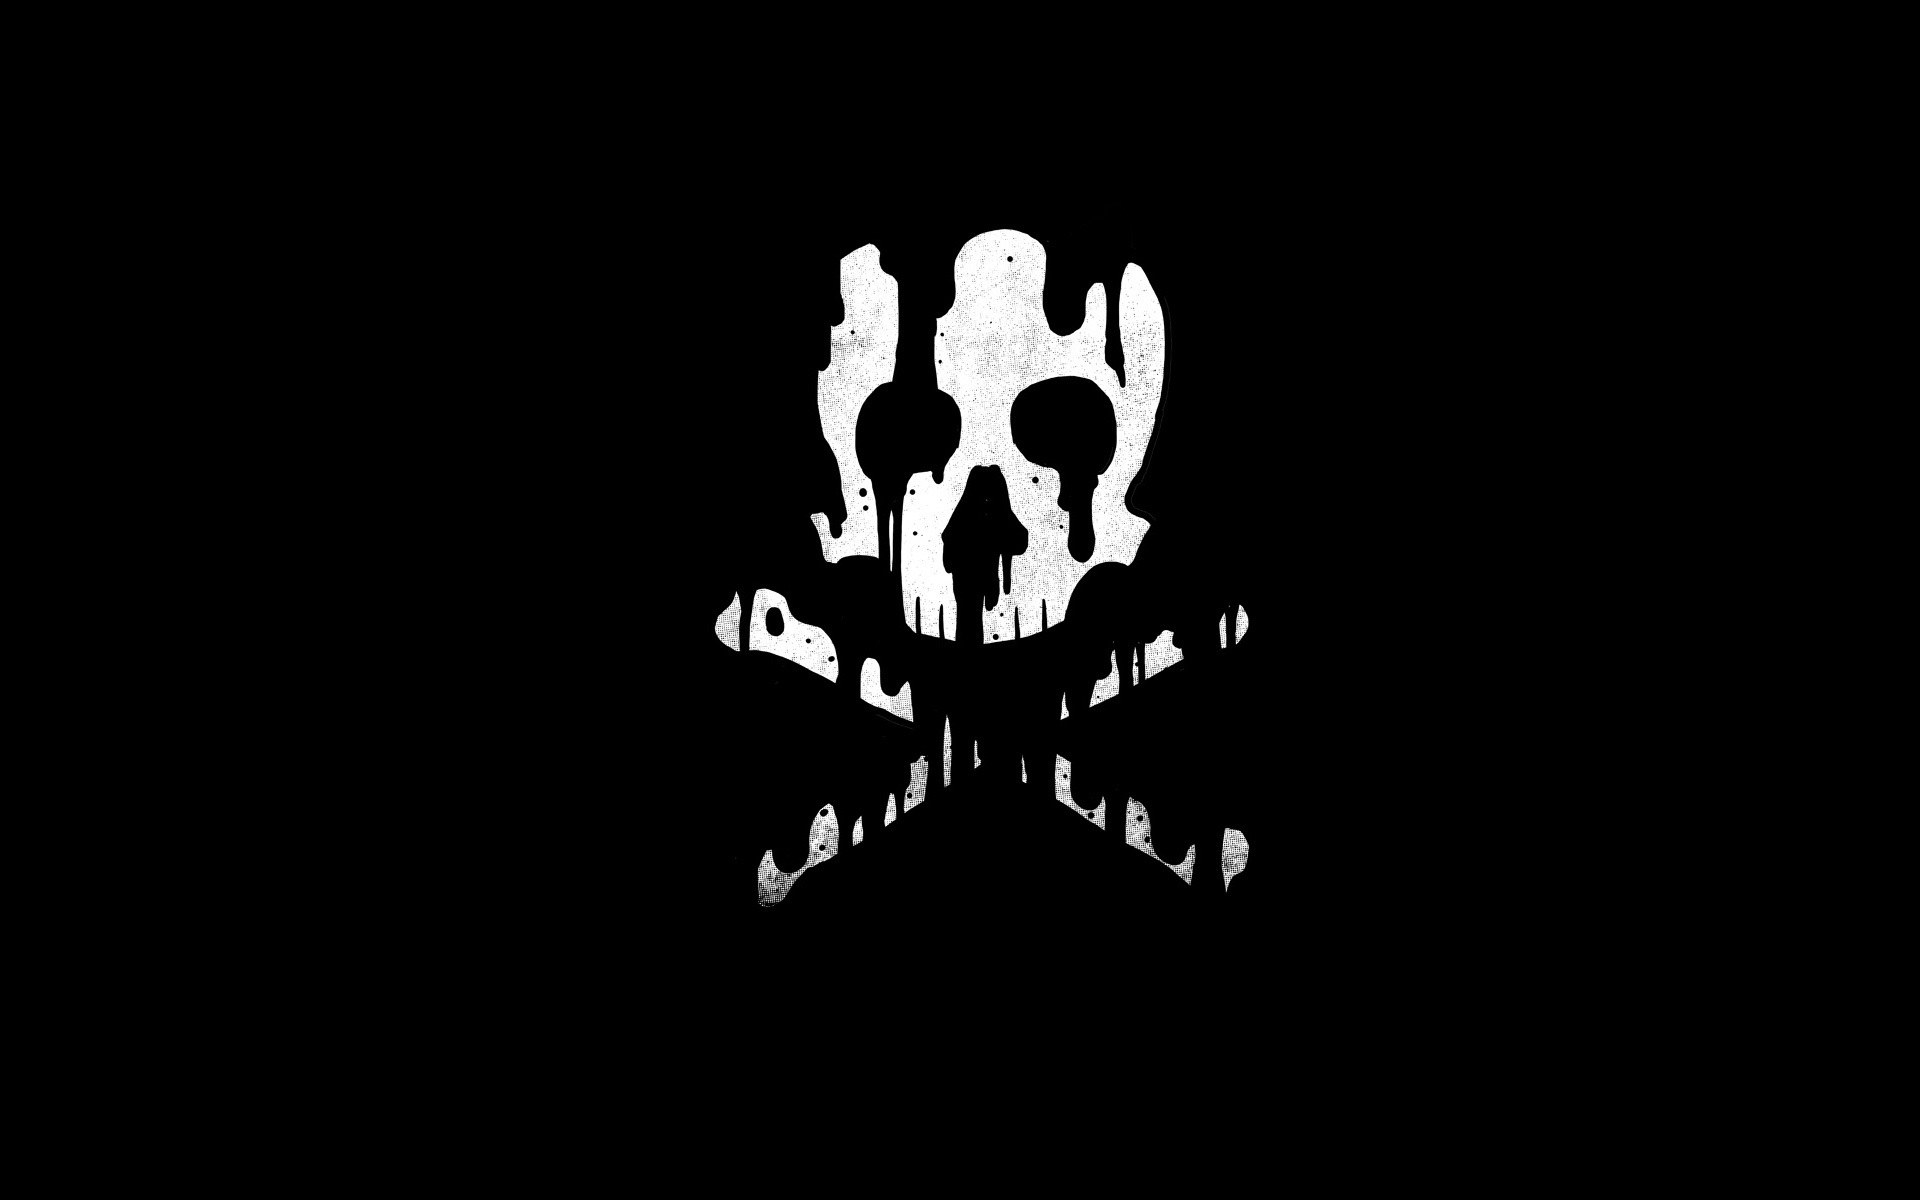 Wallpaper Skull Bones Black Background 1920x1200 Hd Picture Image